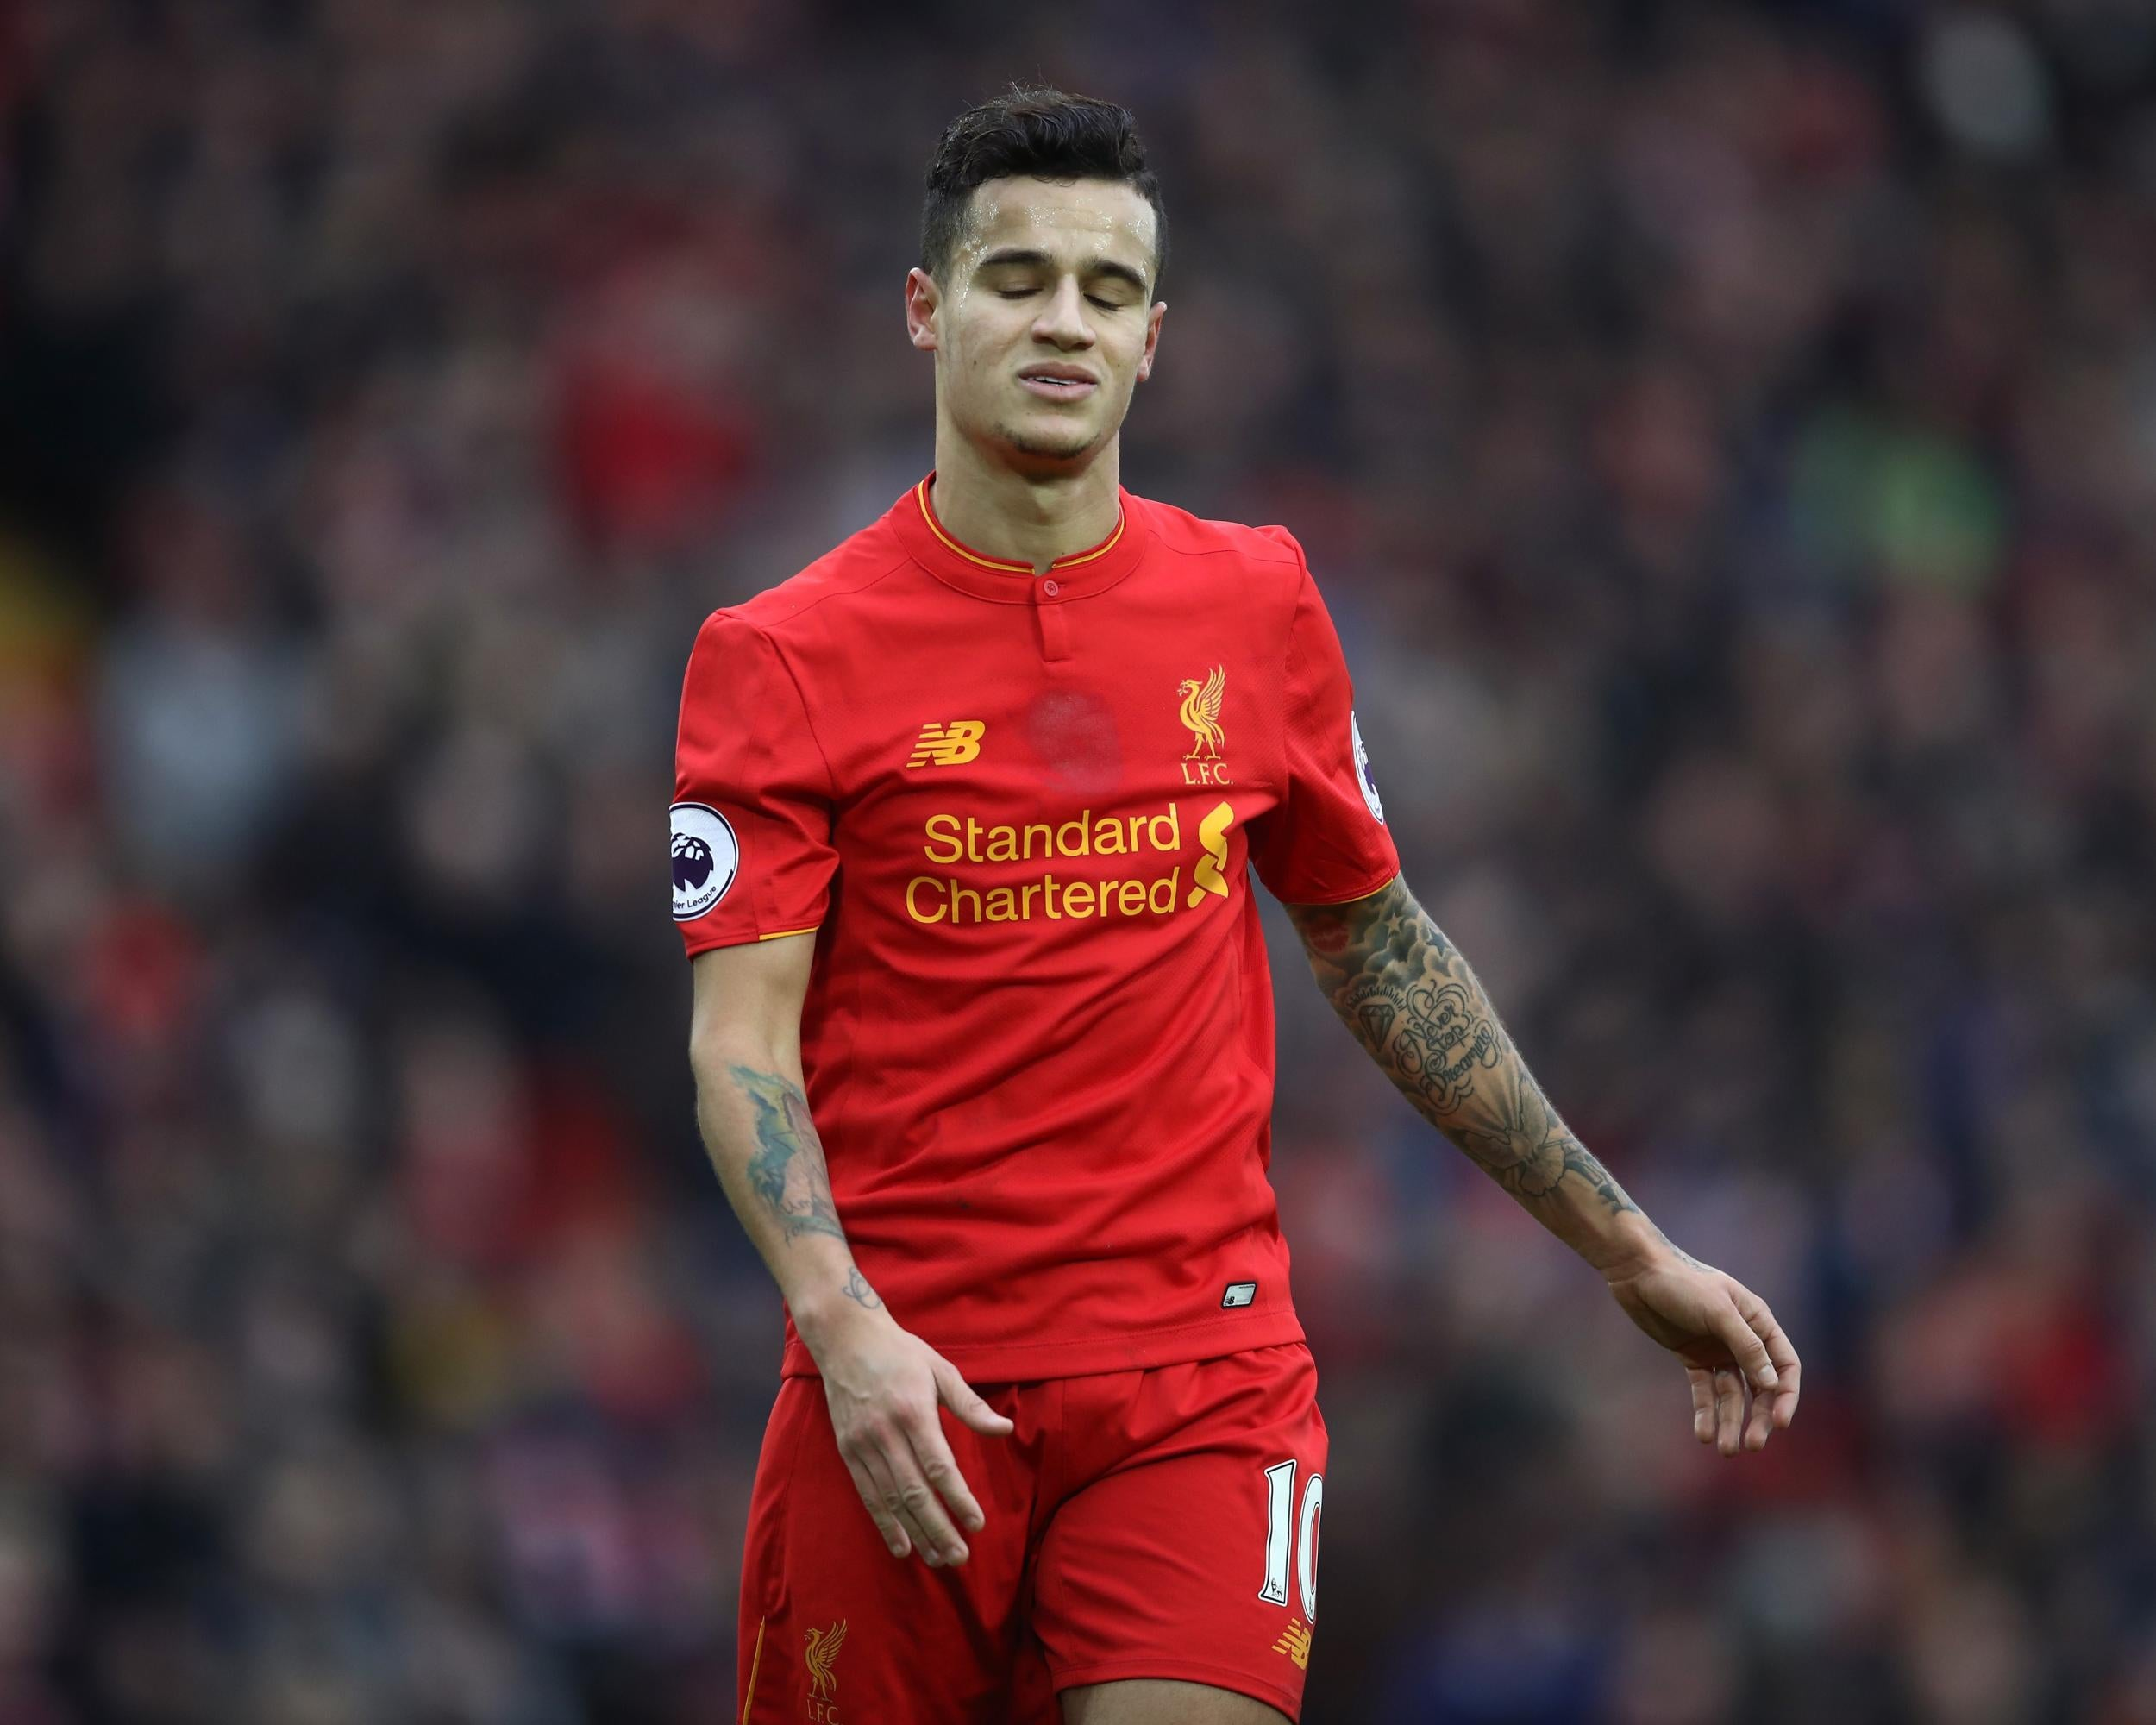 Liverpool should have sold Philippe Coutinho to Barcelona says